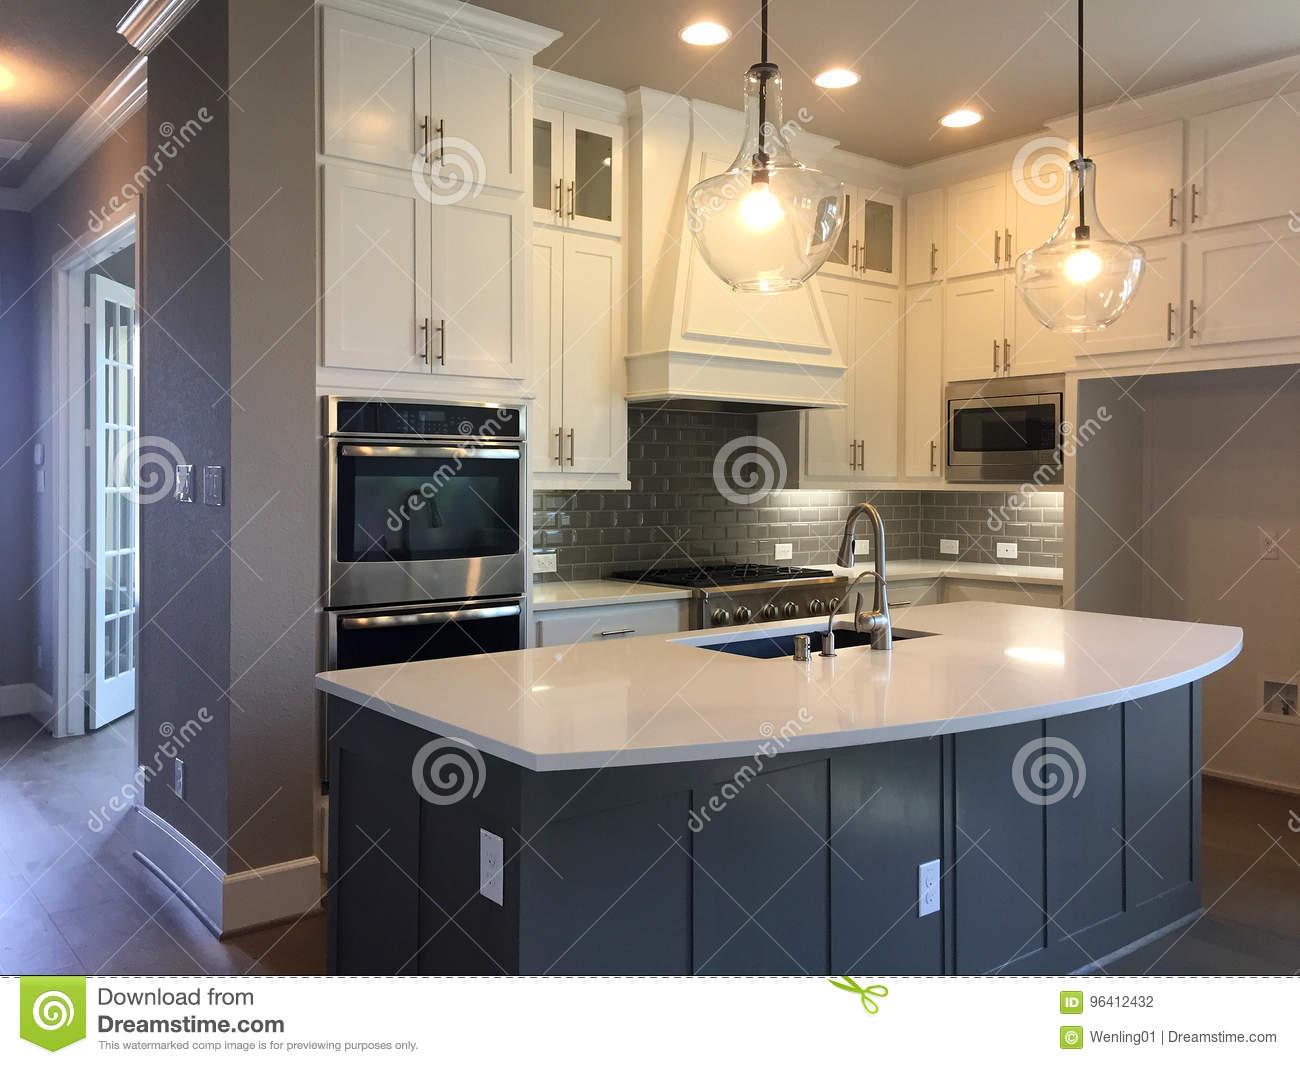 kitchen island counter hotel suites with design in a new house stock photo